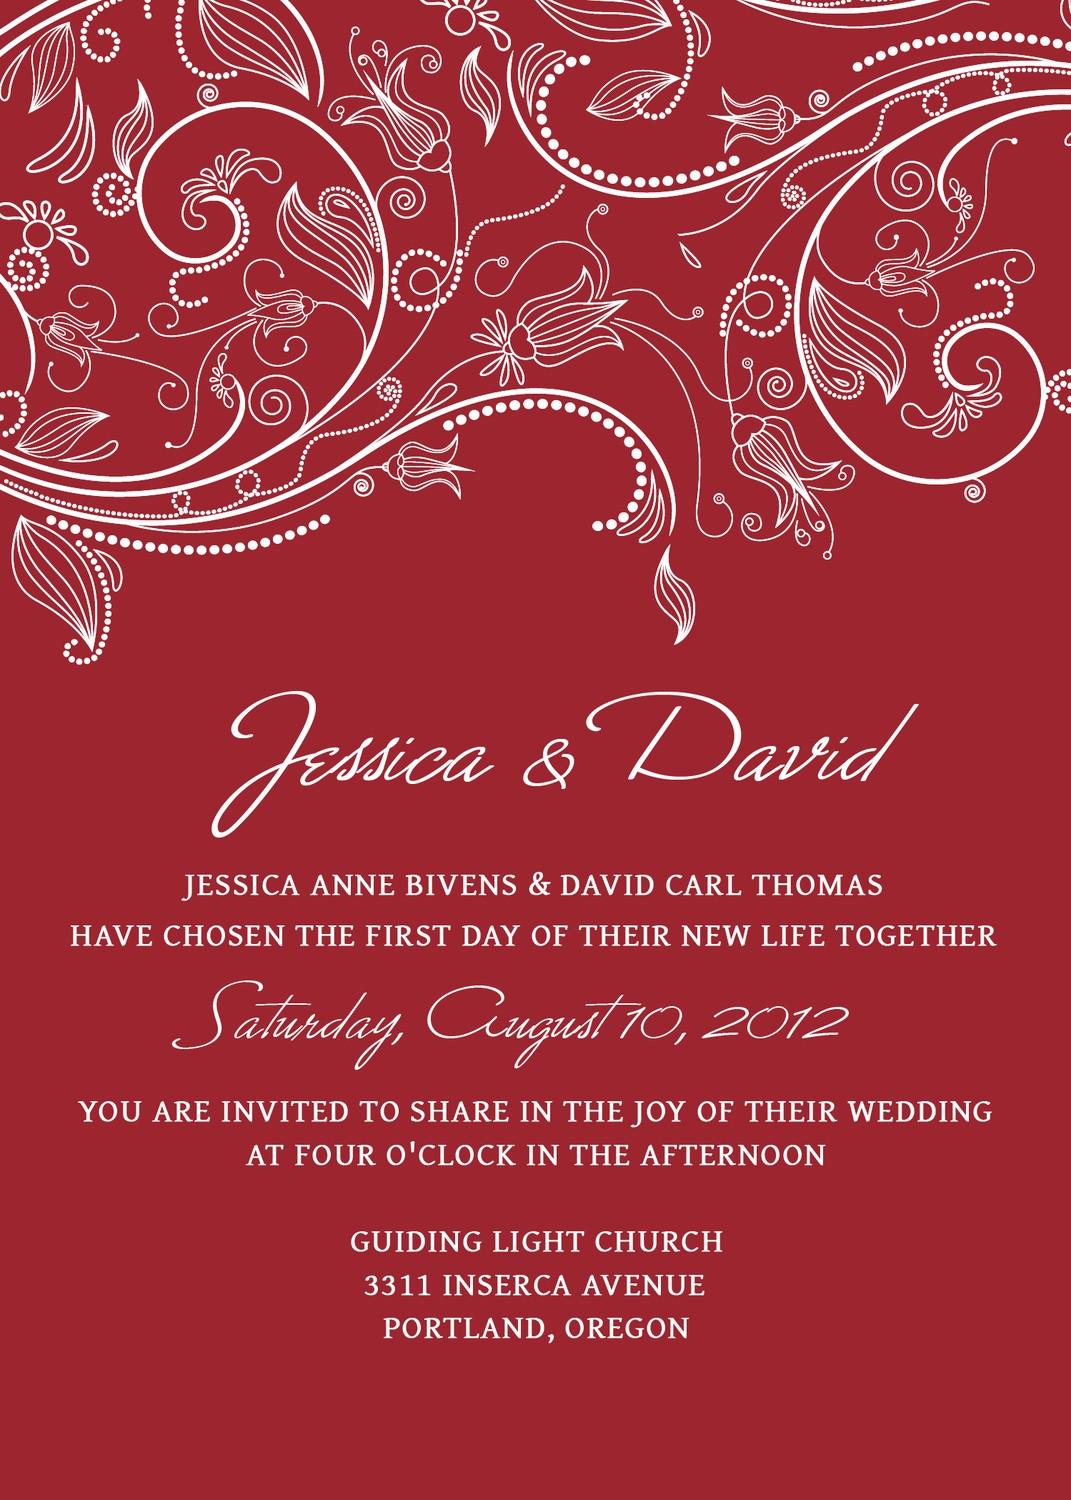 Elegant and Beautiful Wedding Invitations for Free: September 2011